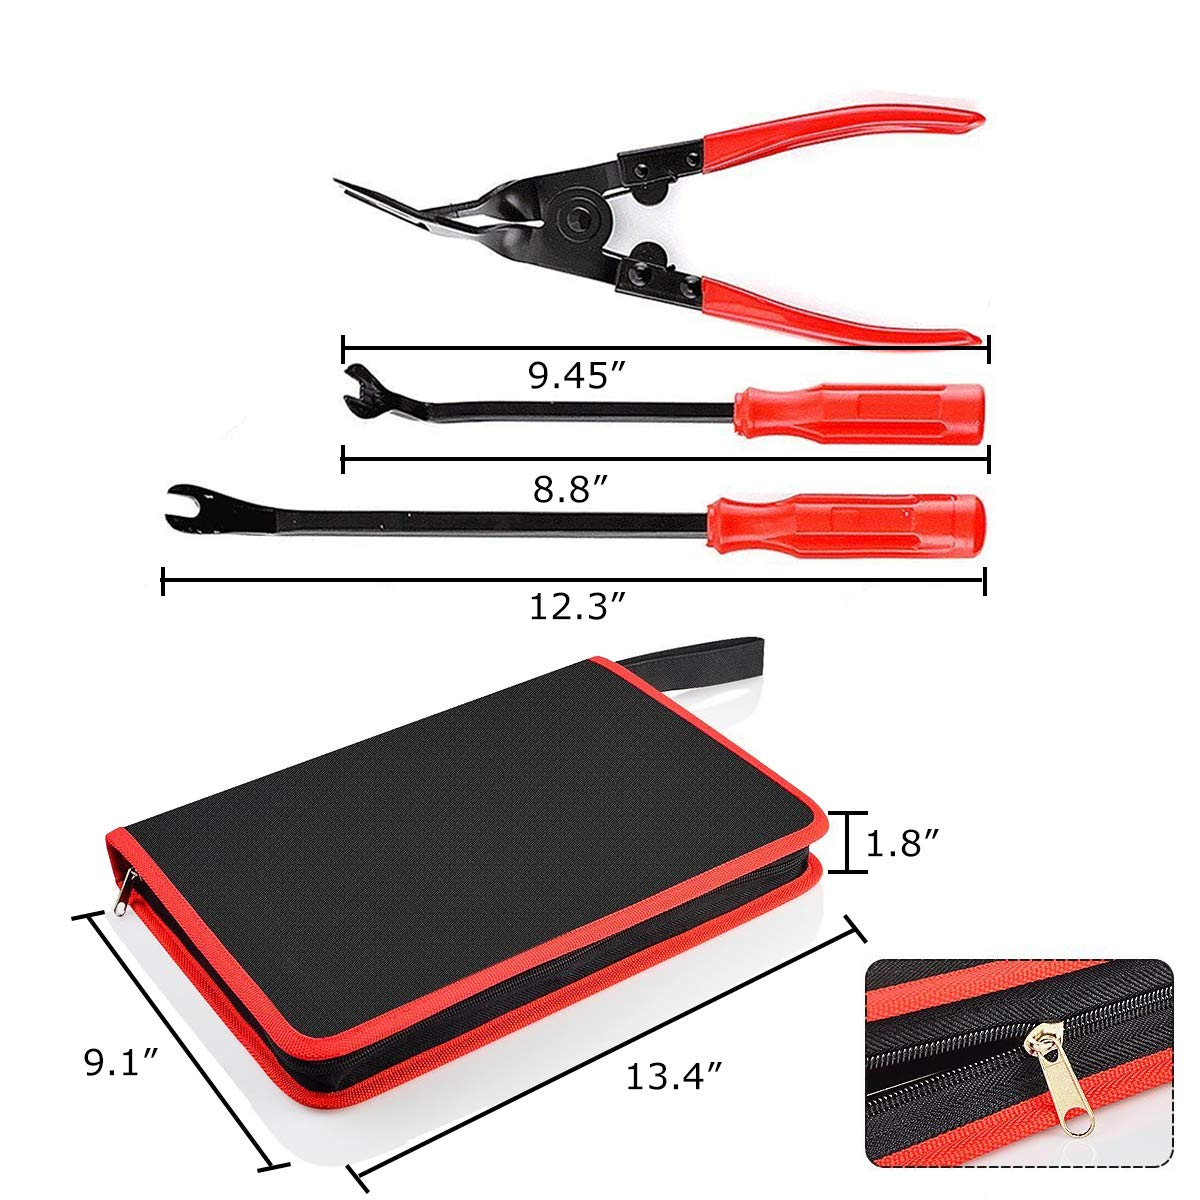 Rabbica Car Trim Removal Tool 30pcs Auto Door Panel Removal Tool for Dash Center Console Installation and Remover with Terminal Removal Tools (red) by Rabbica (Image #3)